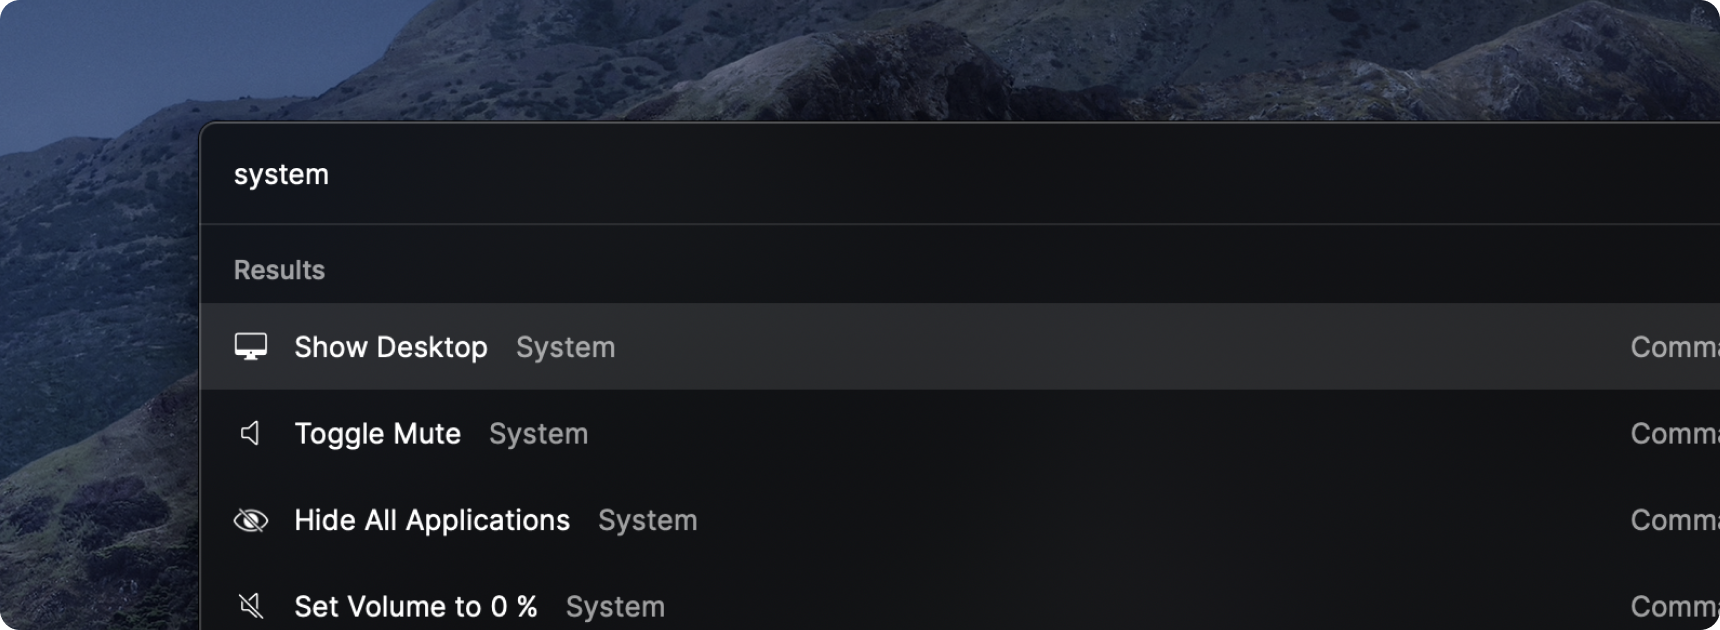 System Commands